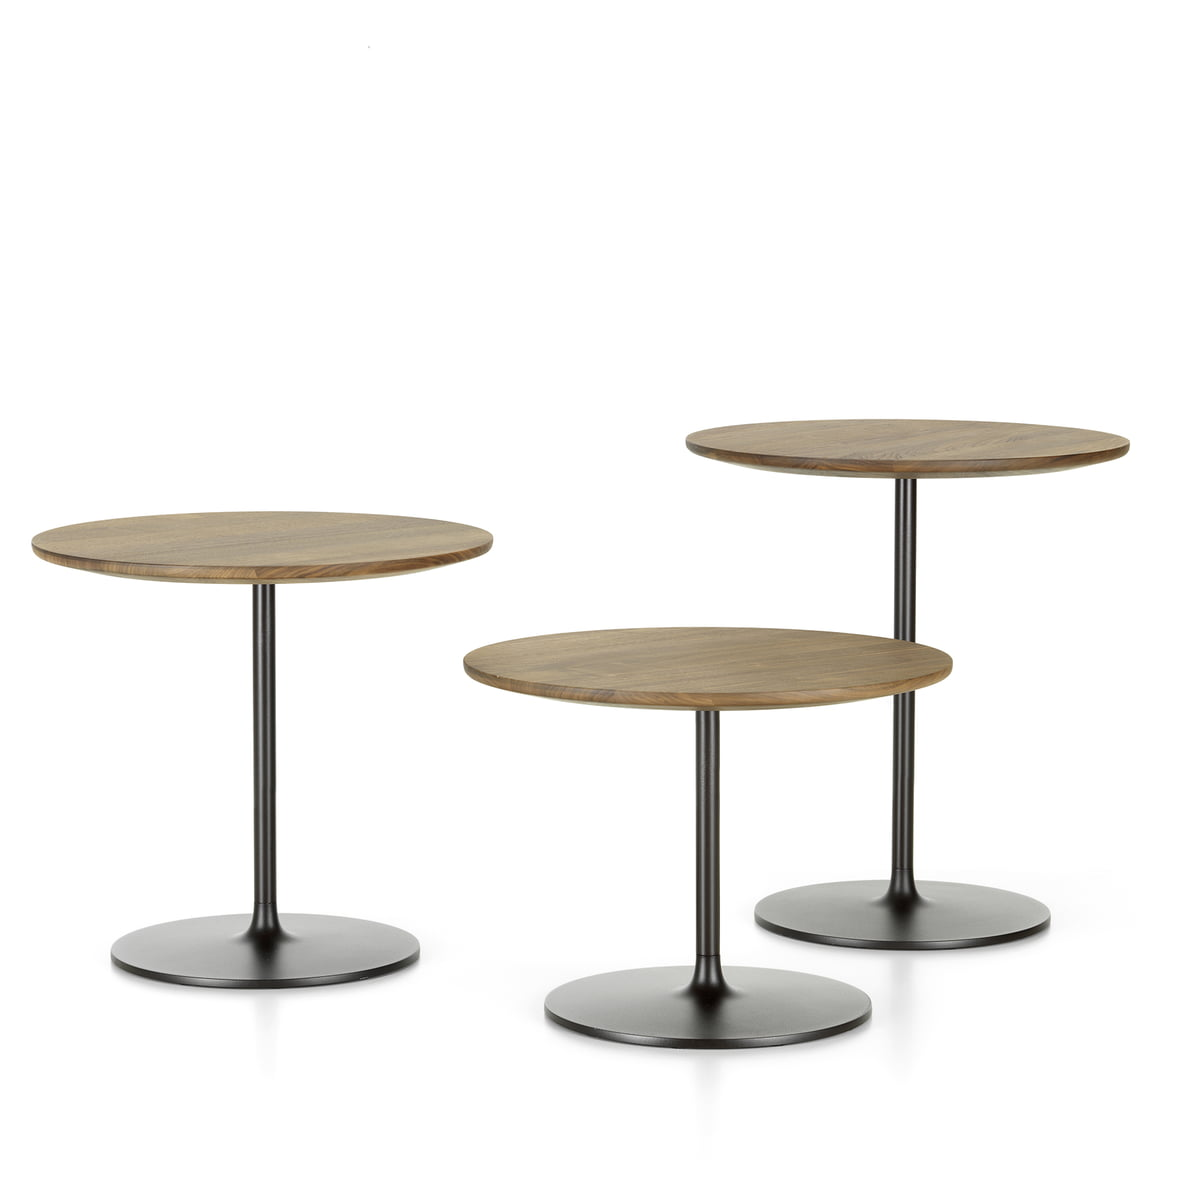 Table D Appoint Cuisine vitra - occasional low table 35, aluminium / chocolate